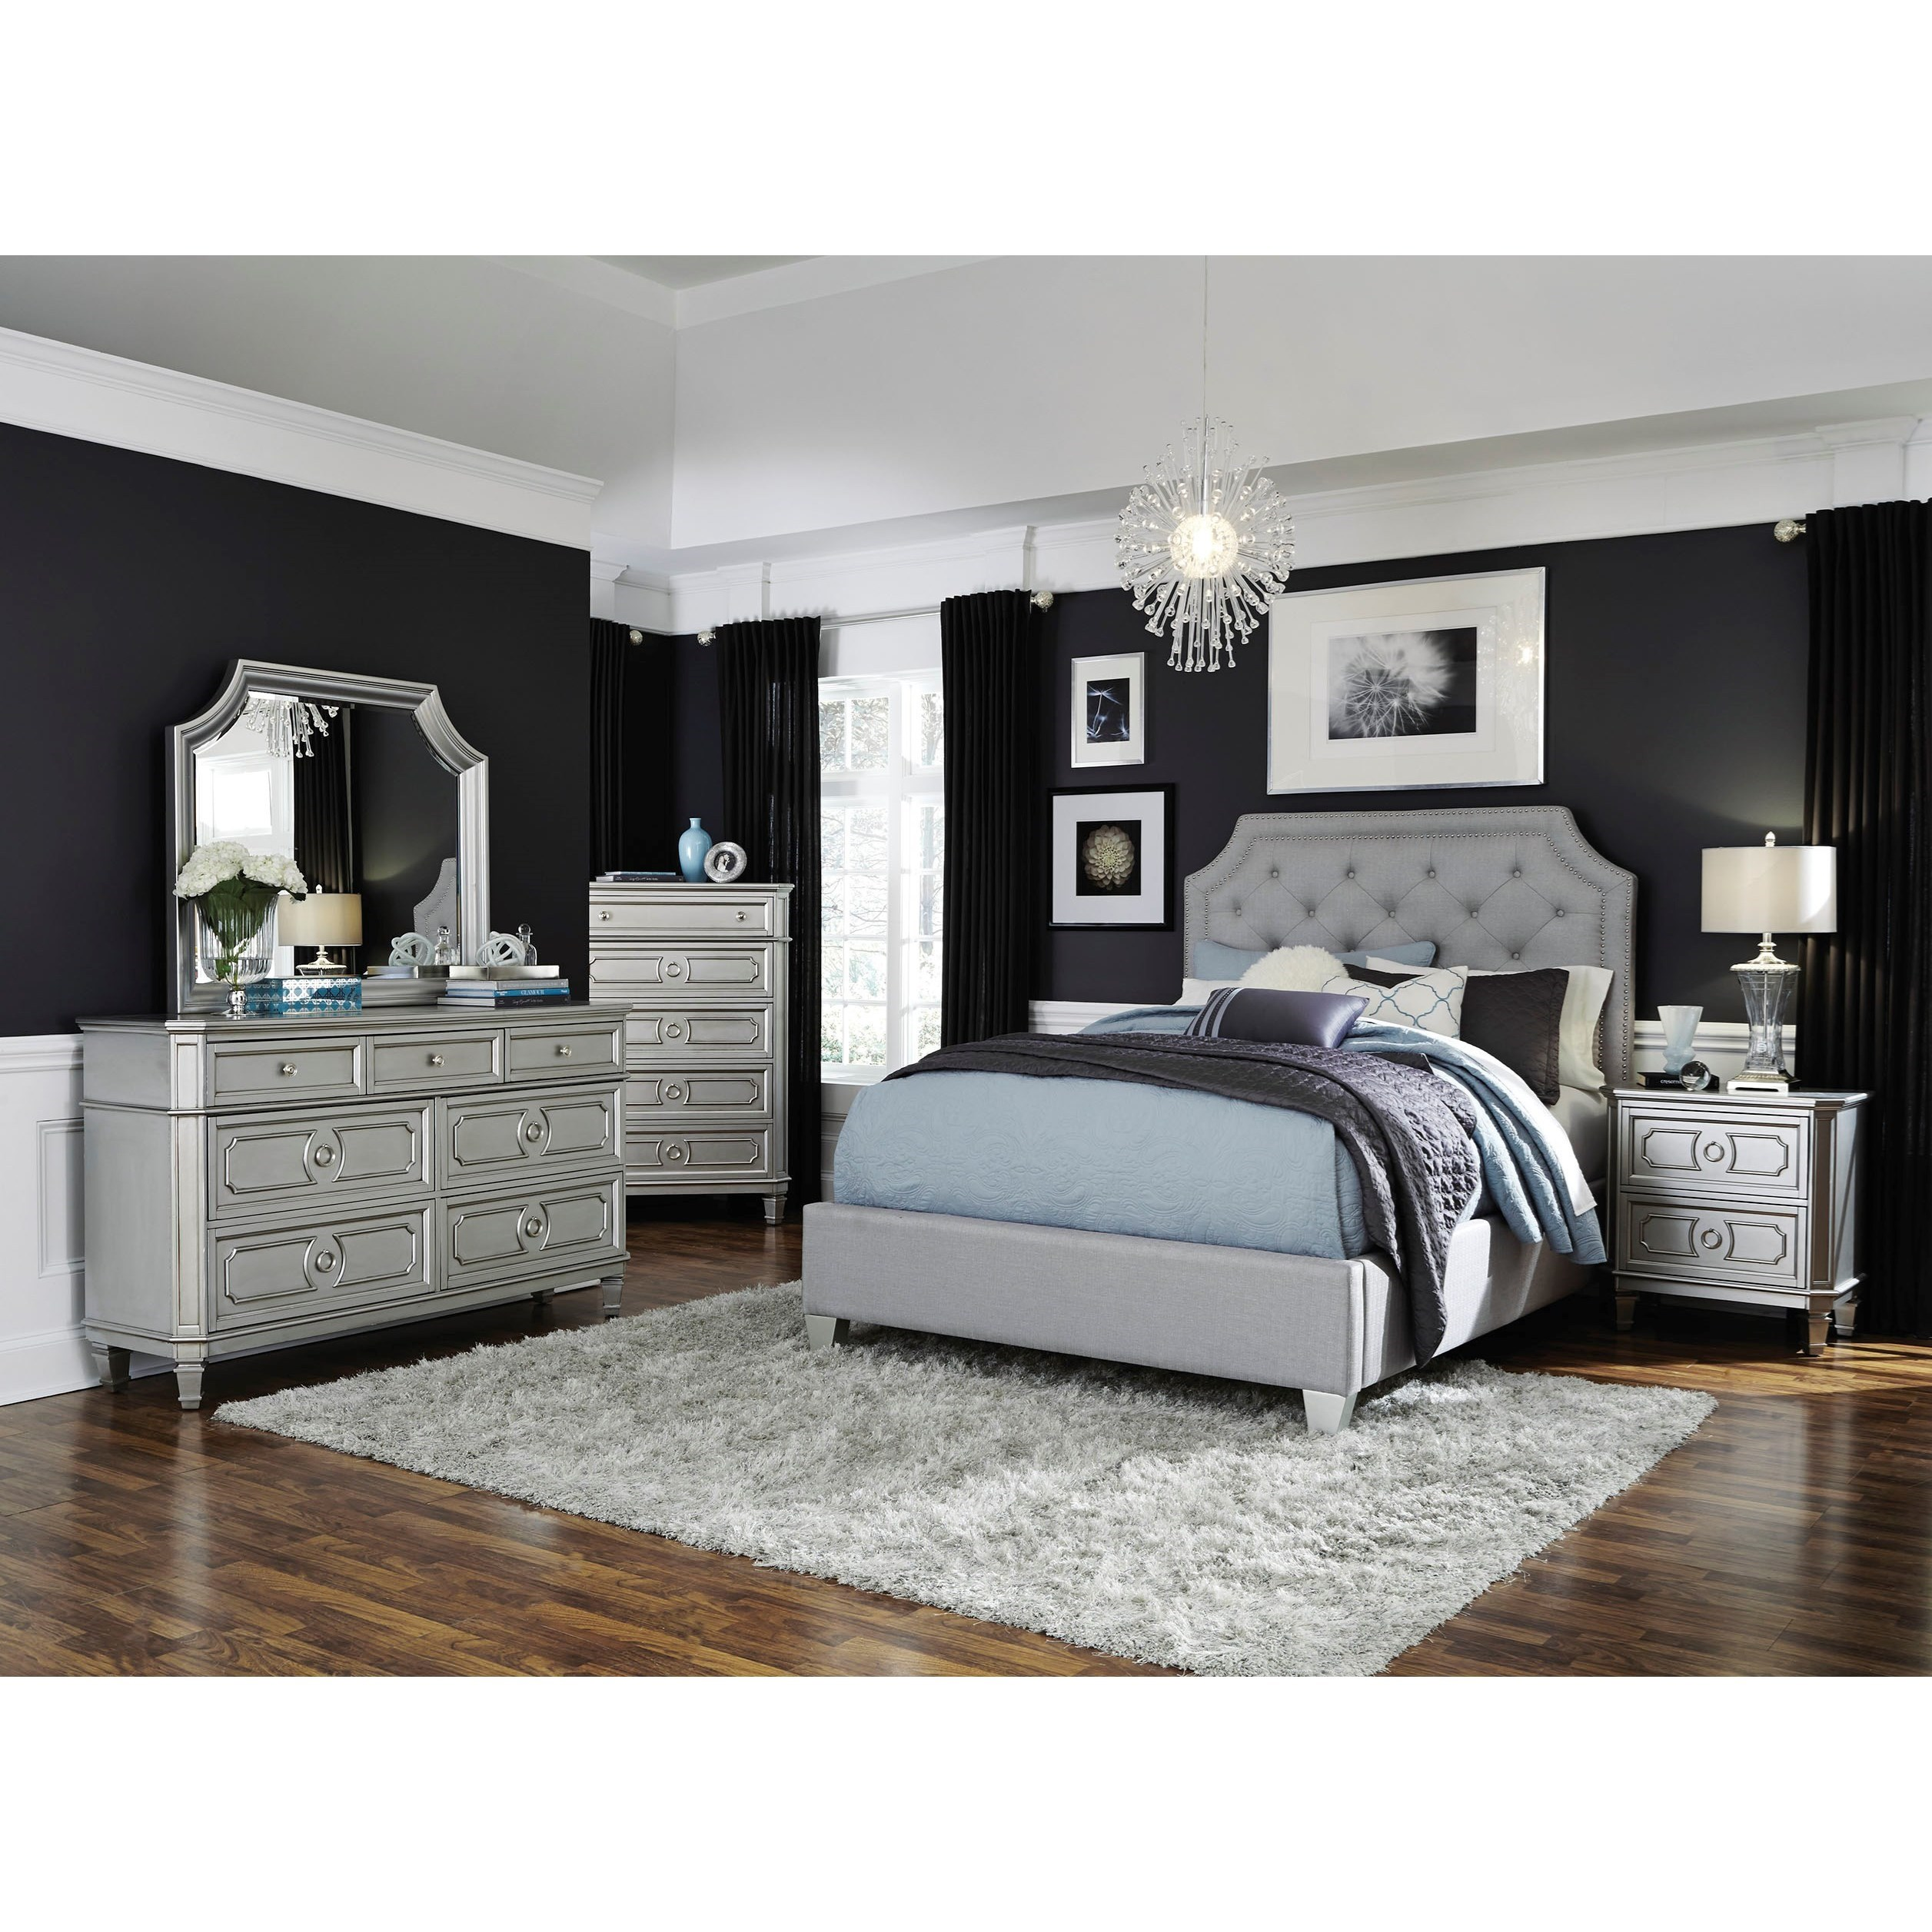 Windsor Silver Queen Bedroom Group by Standard Furniture at Rooms for Less